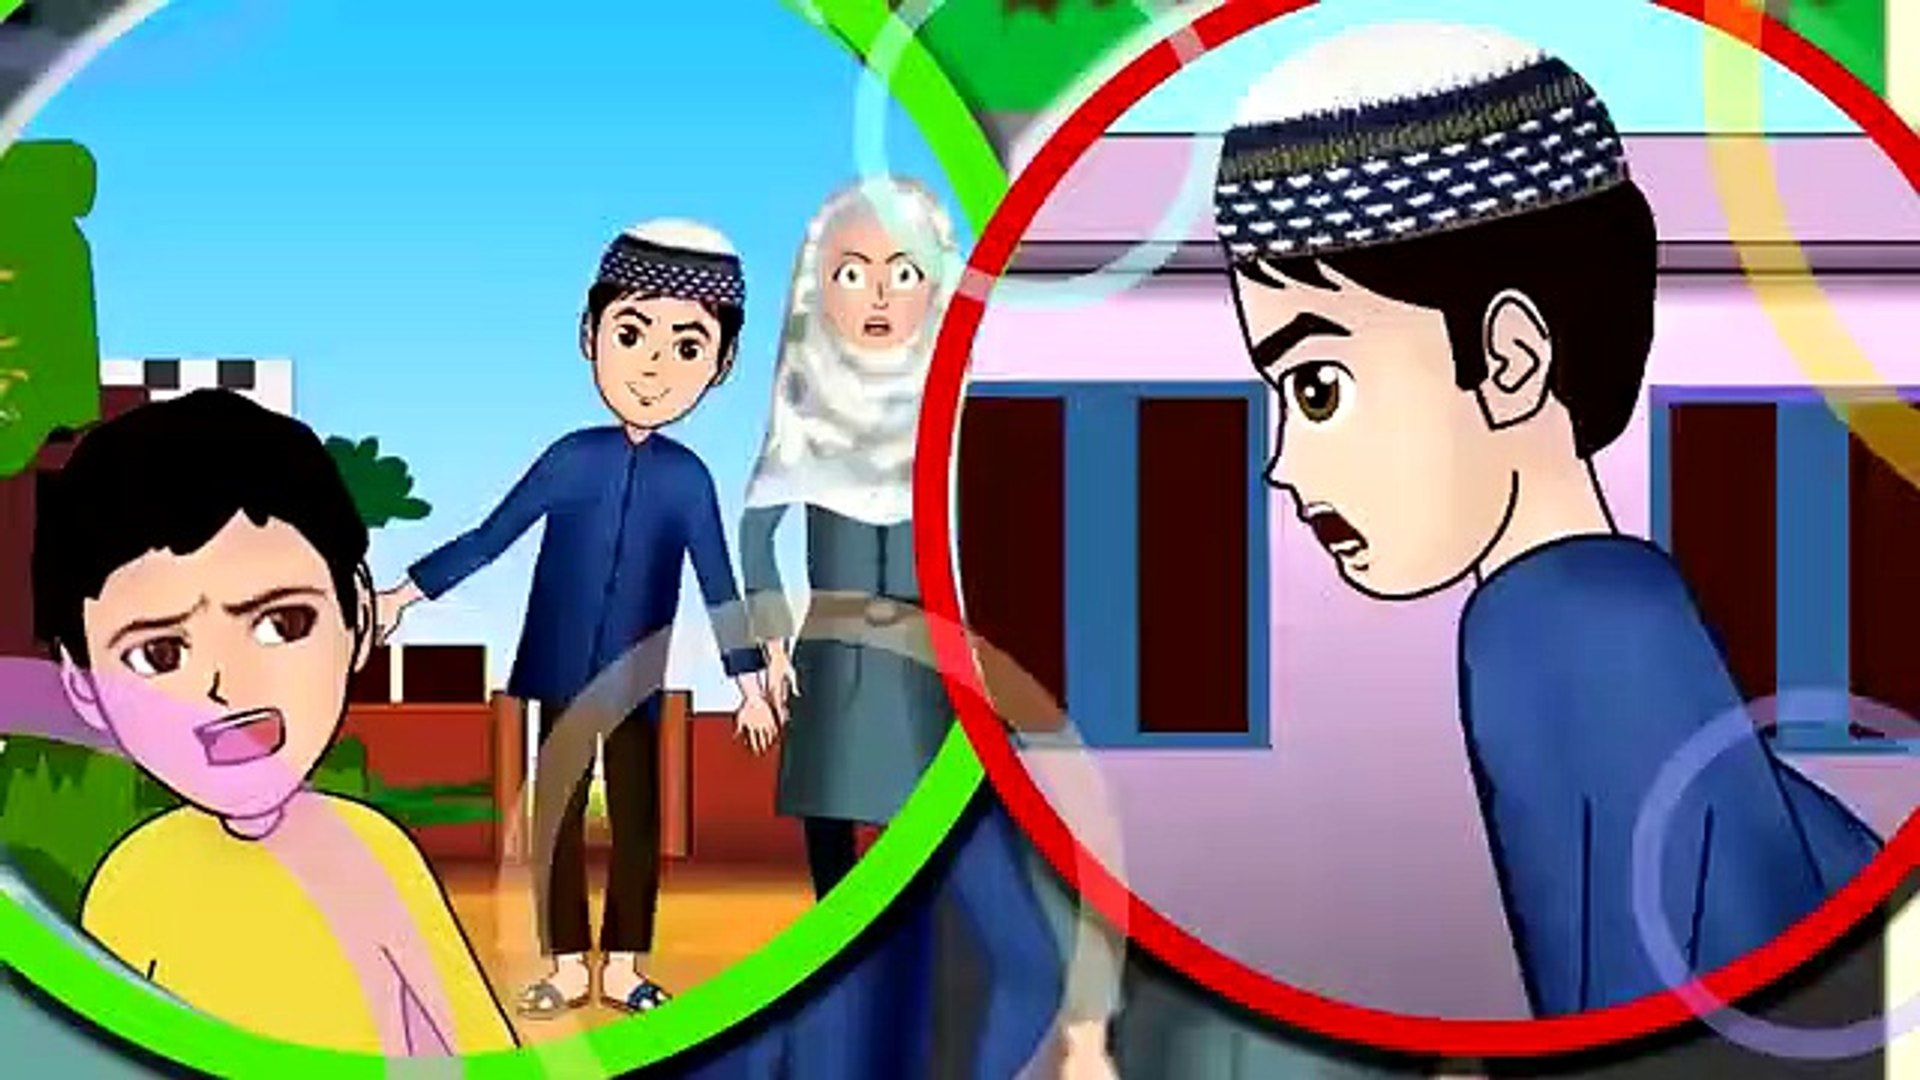 Angry Abdul Bari with friends Urdu Islamic Cartoons for children